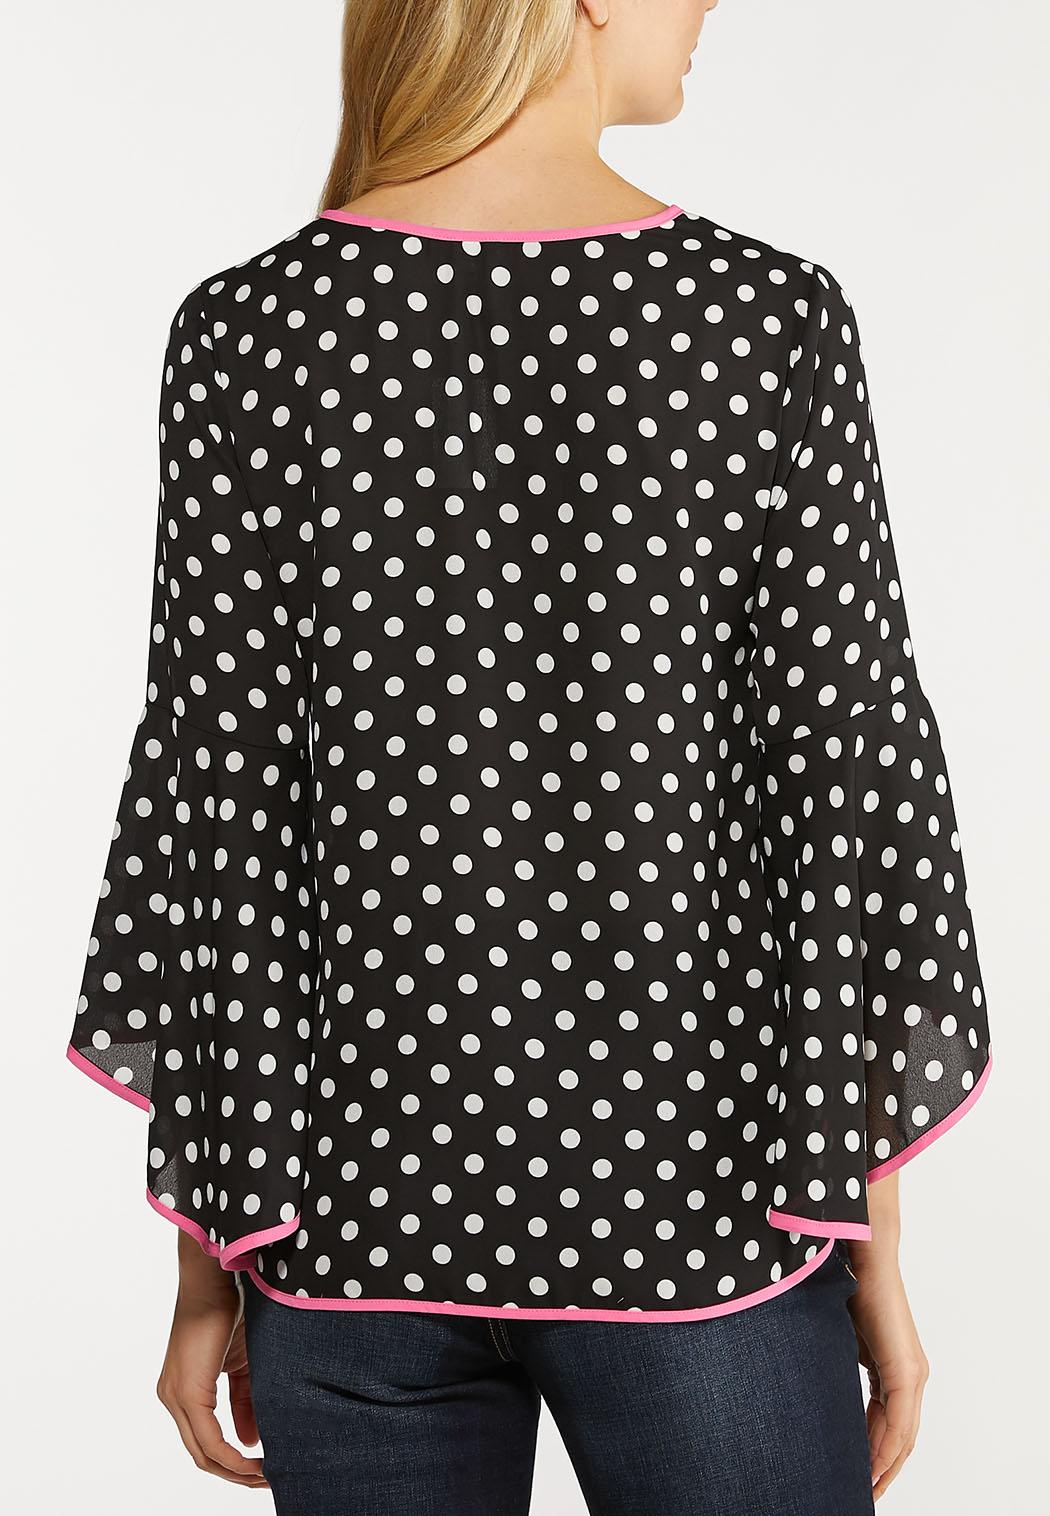 Piped Polka Dot Top (Item #44126597)